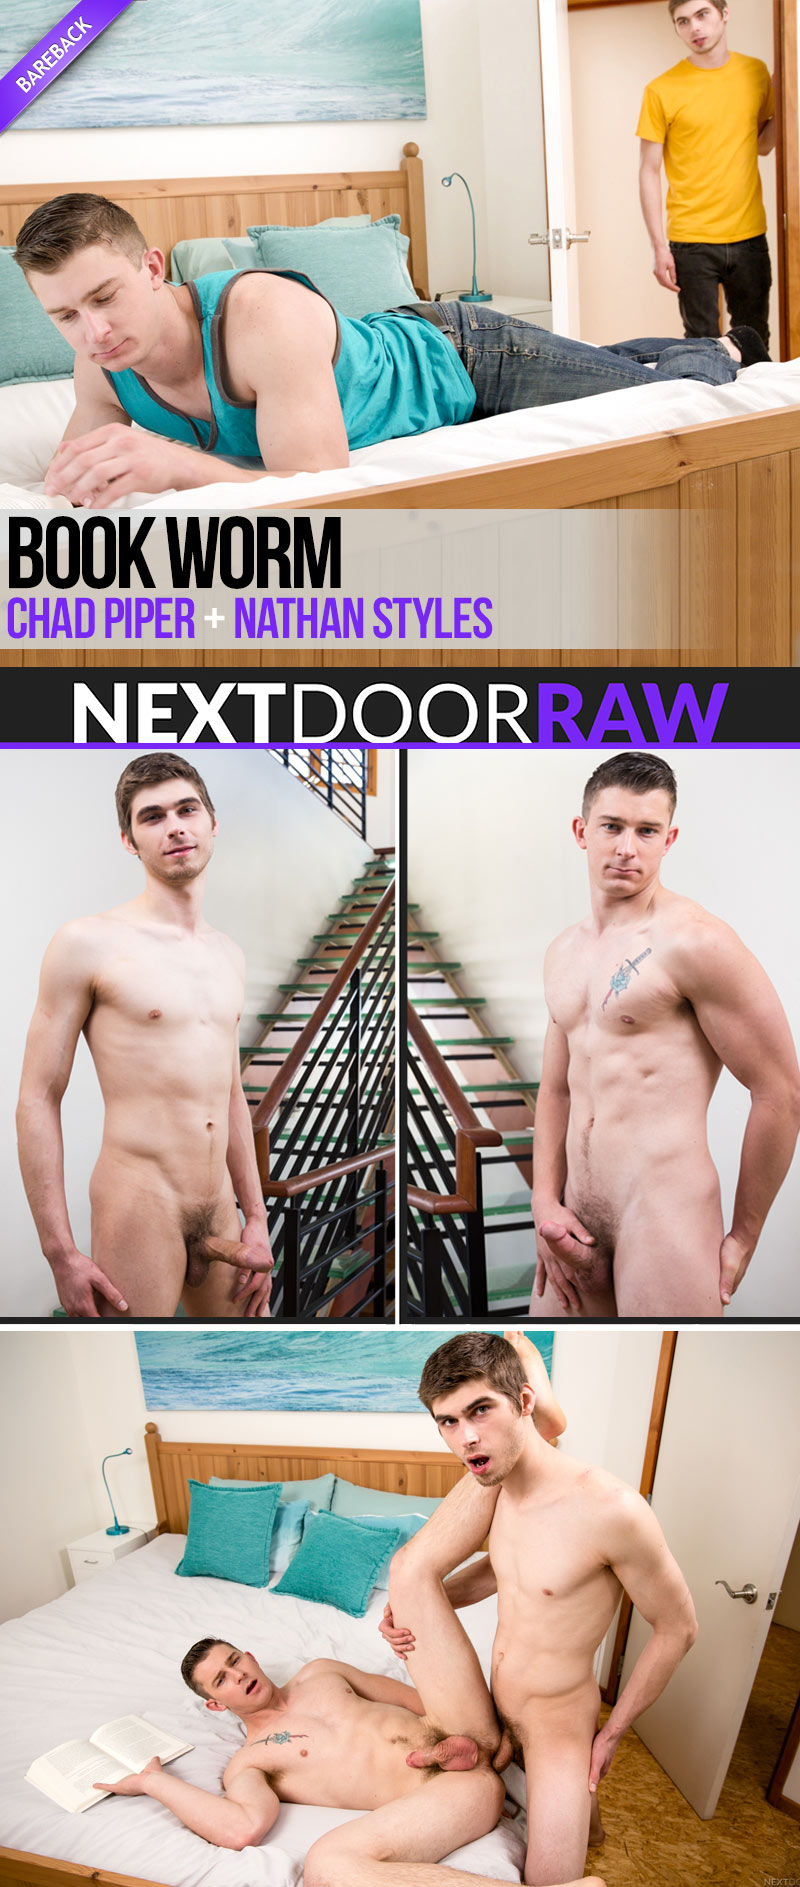 Book Worm (Chad Piper Fucks Nathan Styles) at NextDoorRAW!